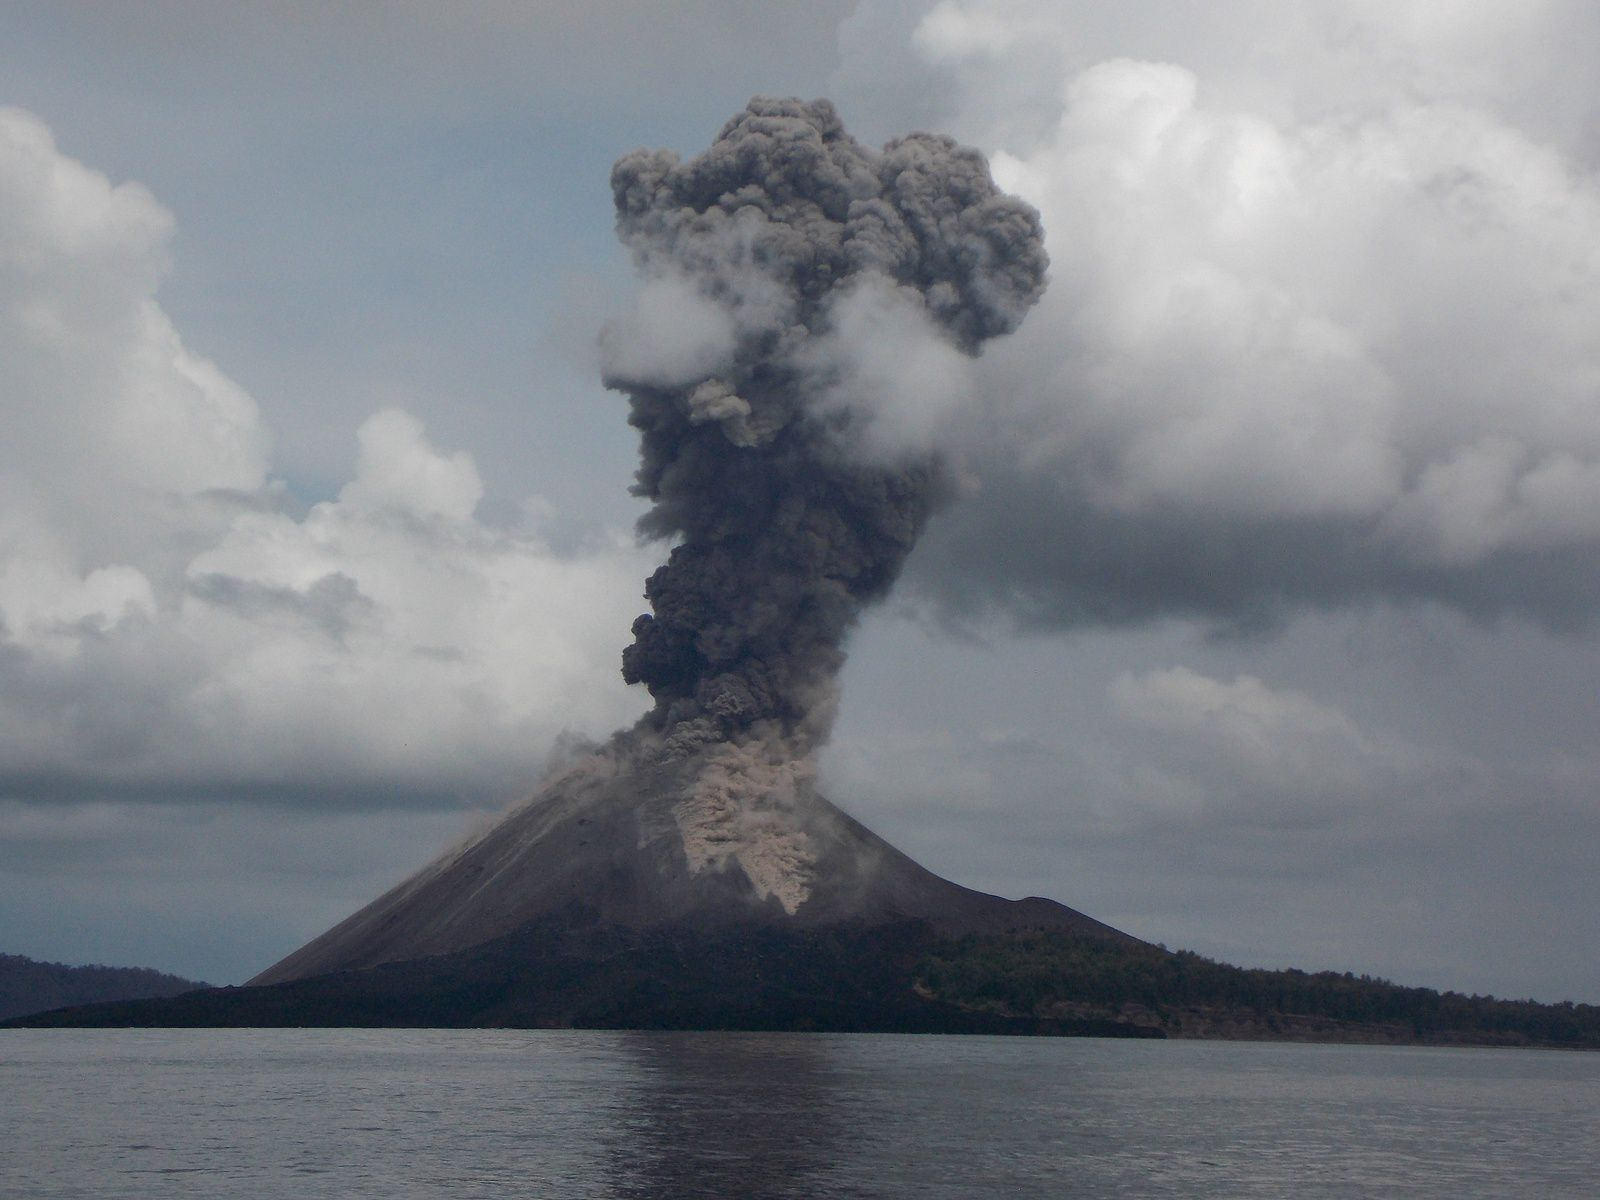 The Anak Krakatau seen from Rakata - picture Dan Quinn 10.11.2018